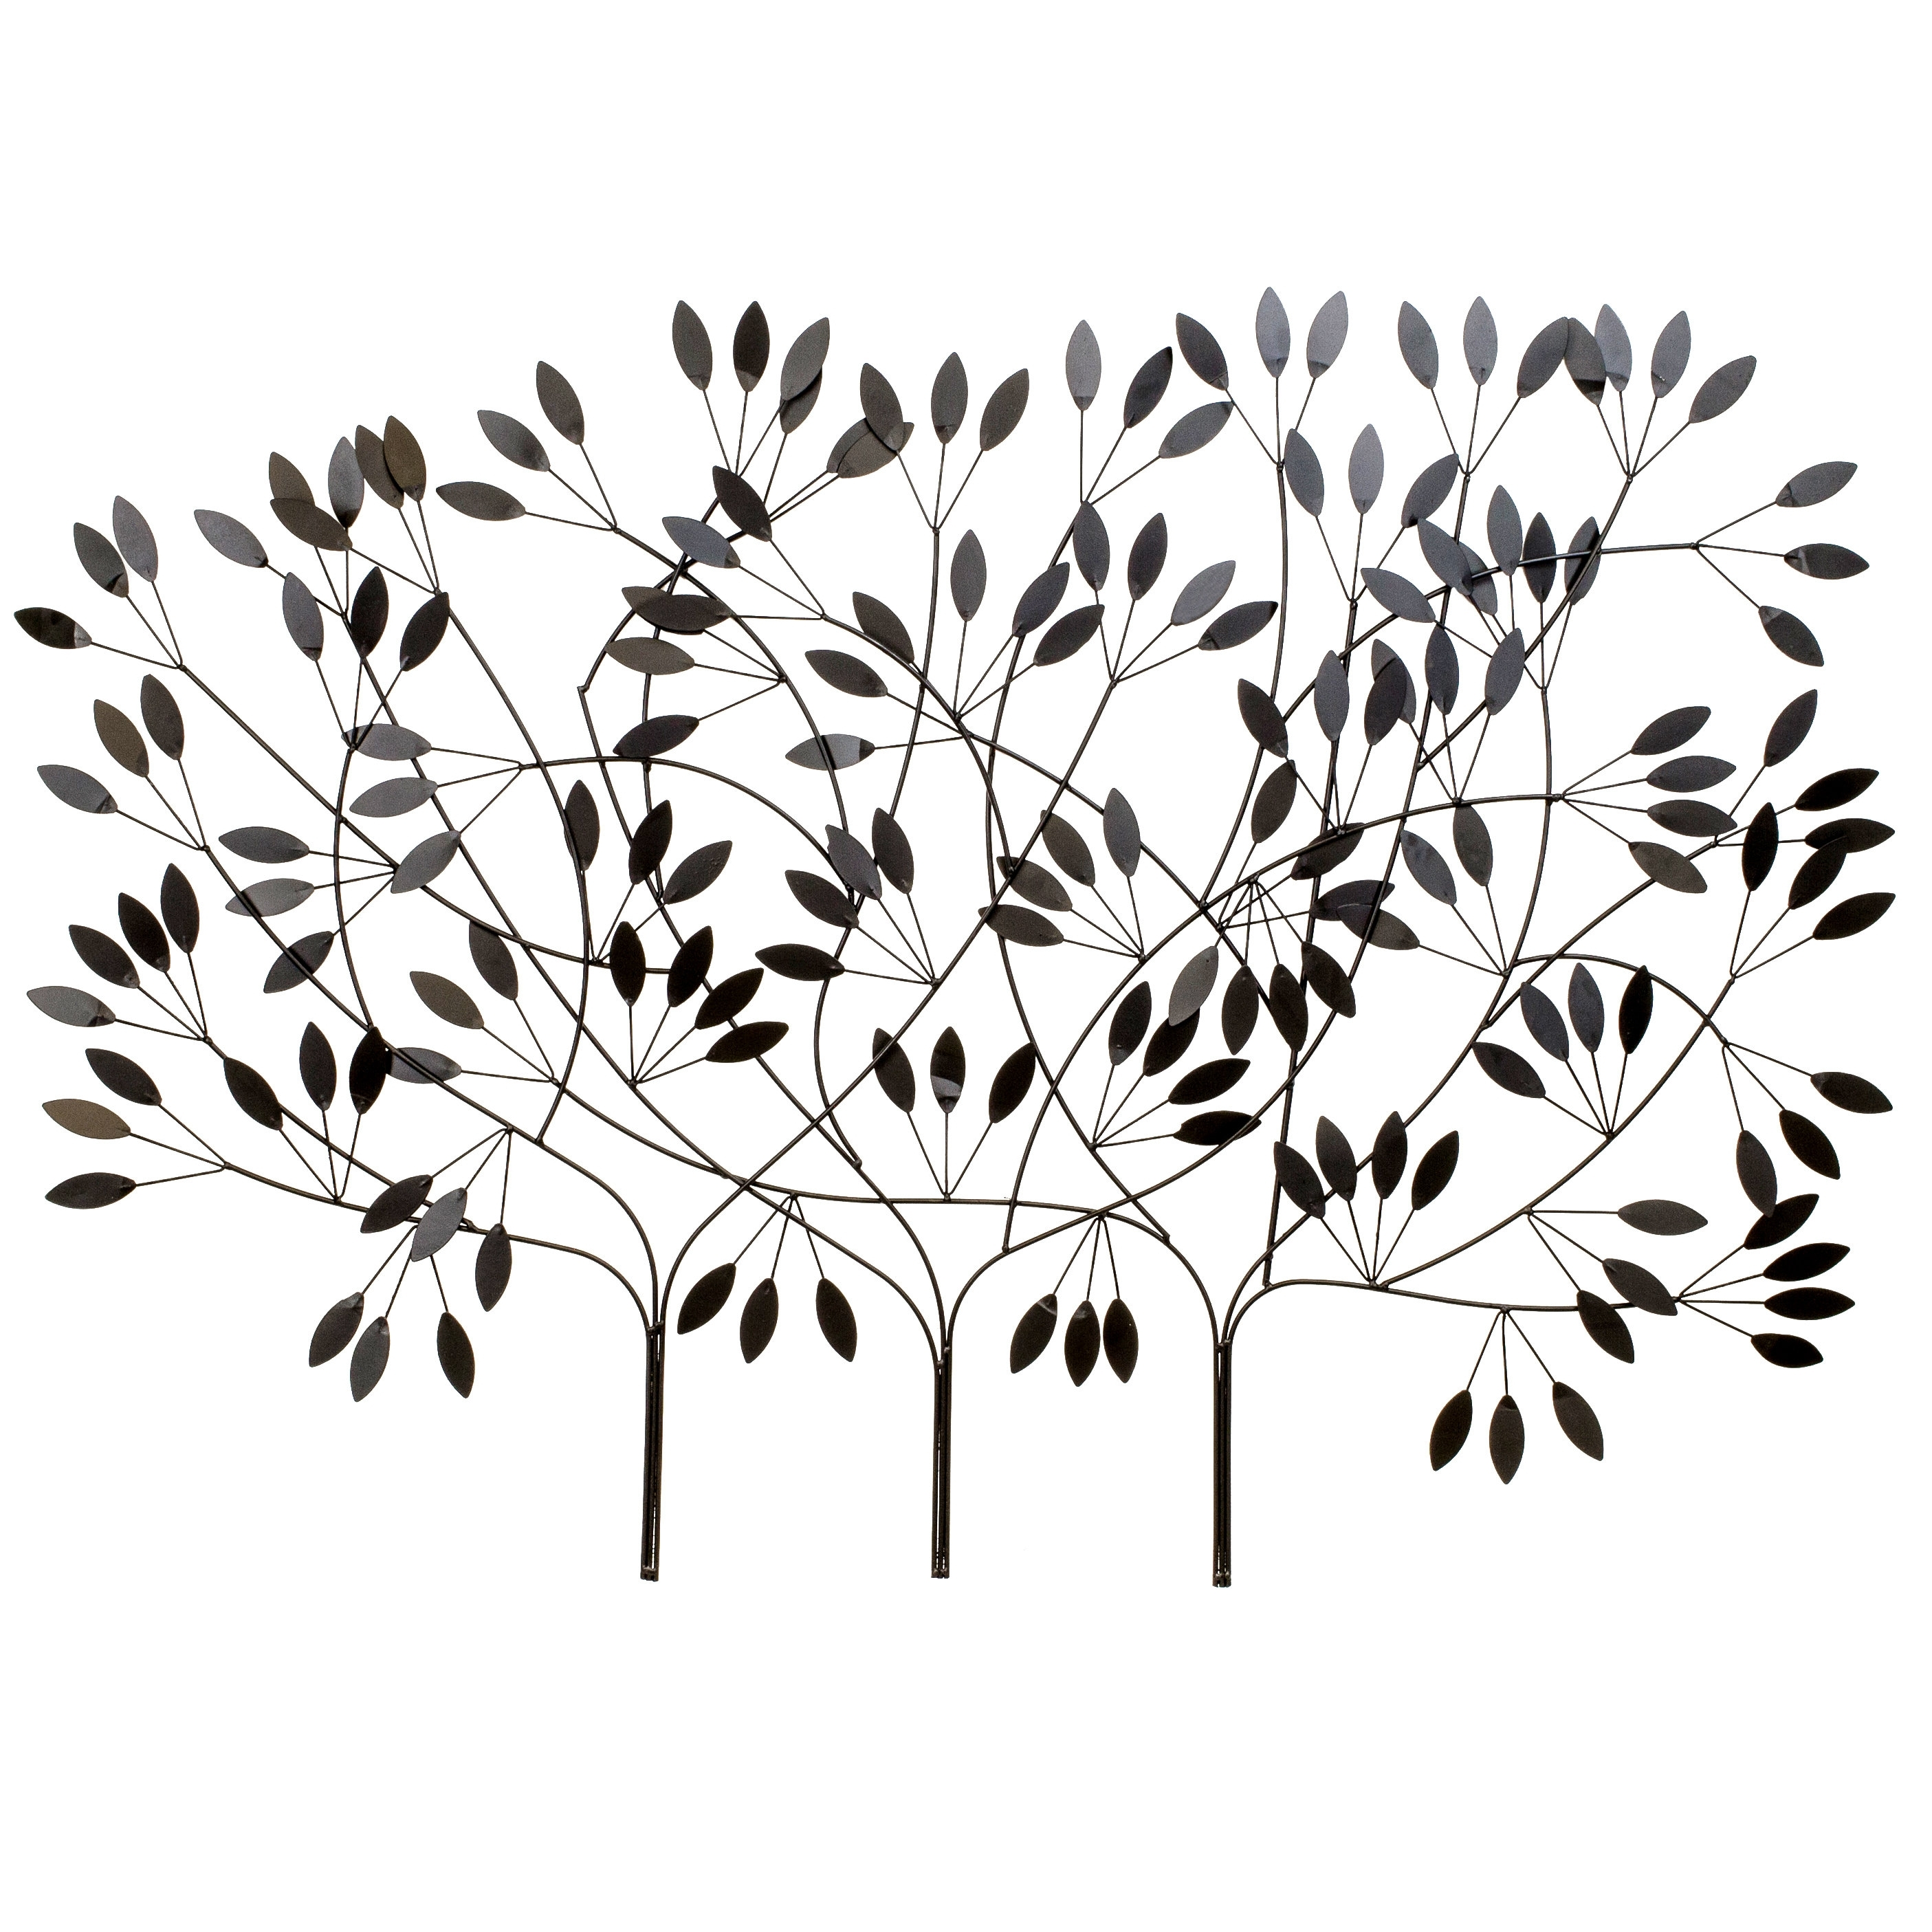 Bayaccents Large Metal Tree Wall Décor | Wayfair for Metal Tree Wall Art (Image 3 of 21)